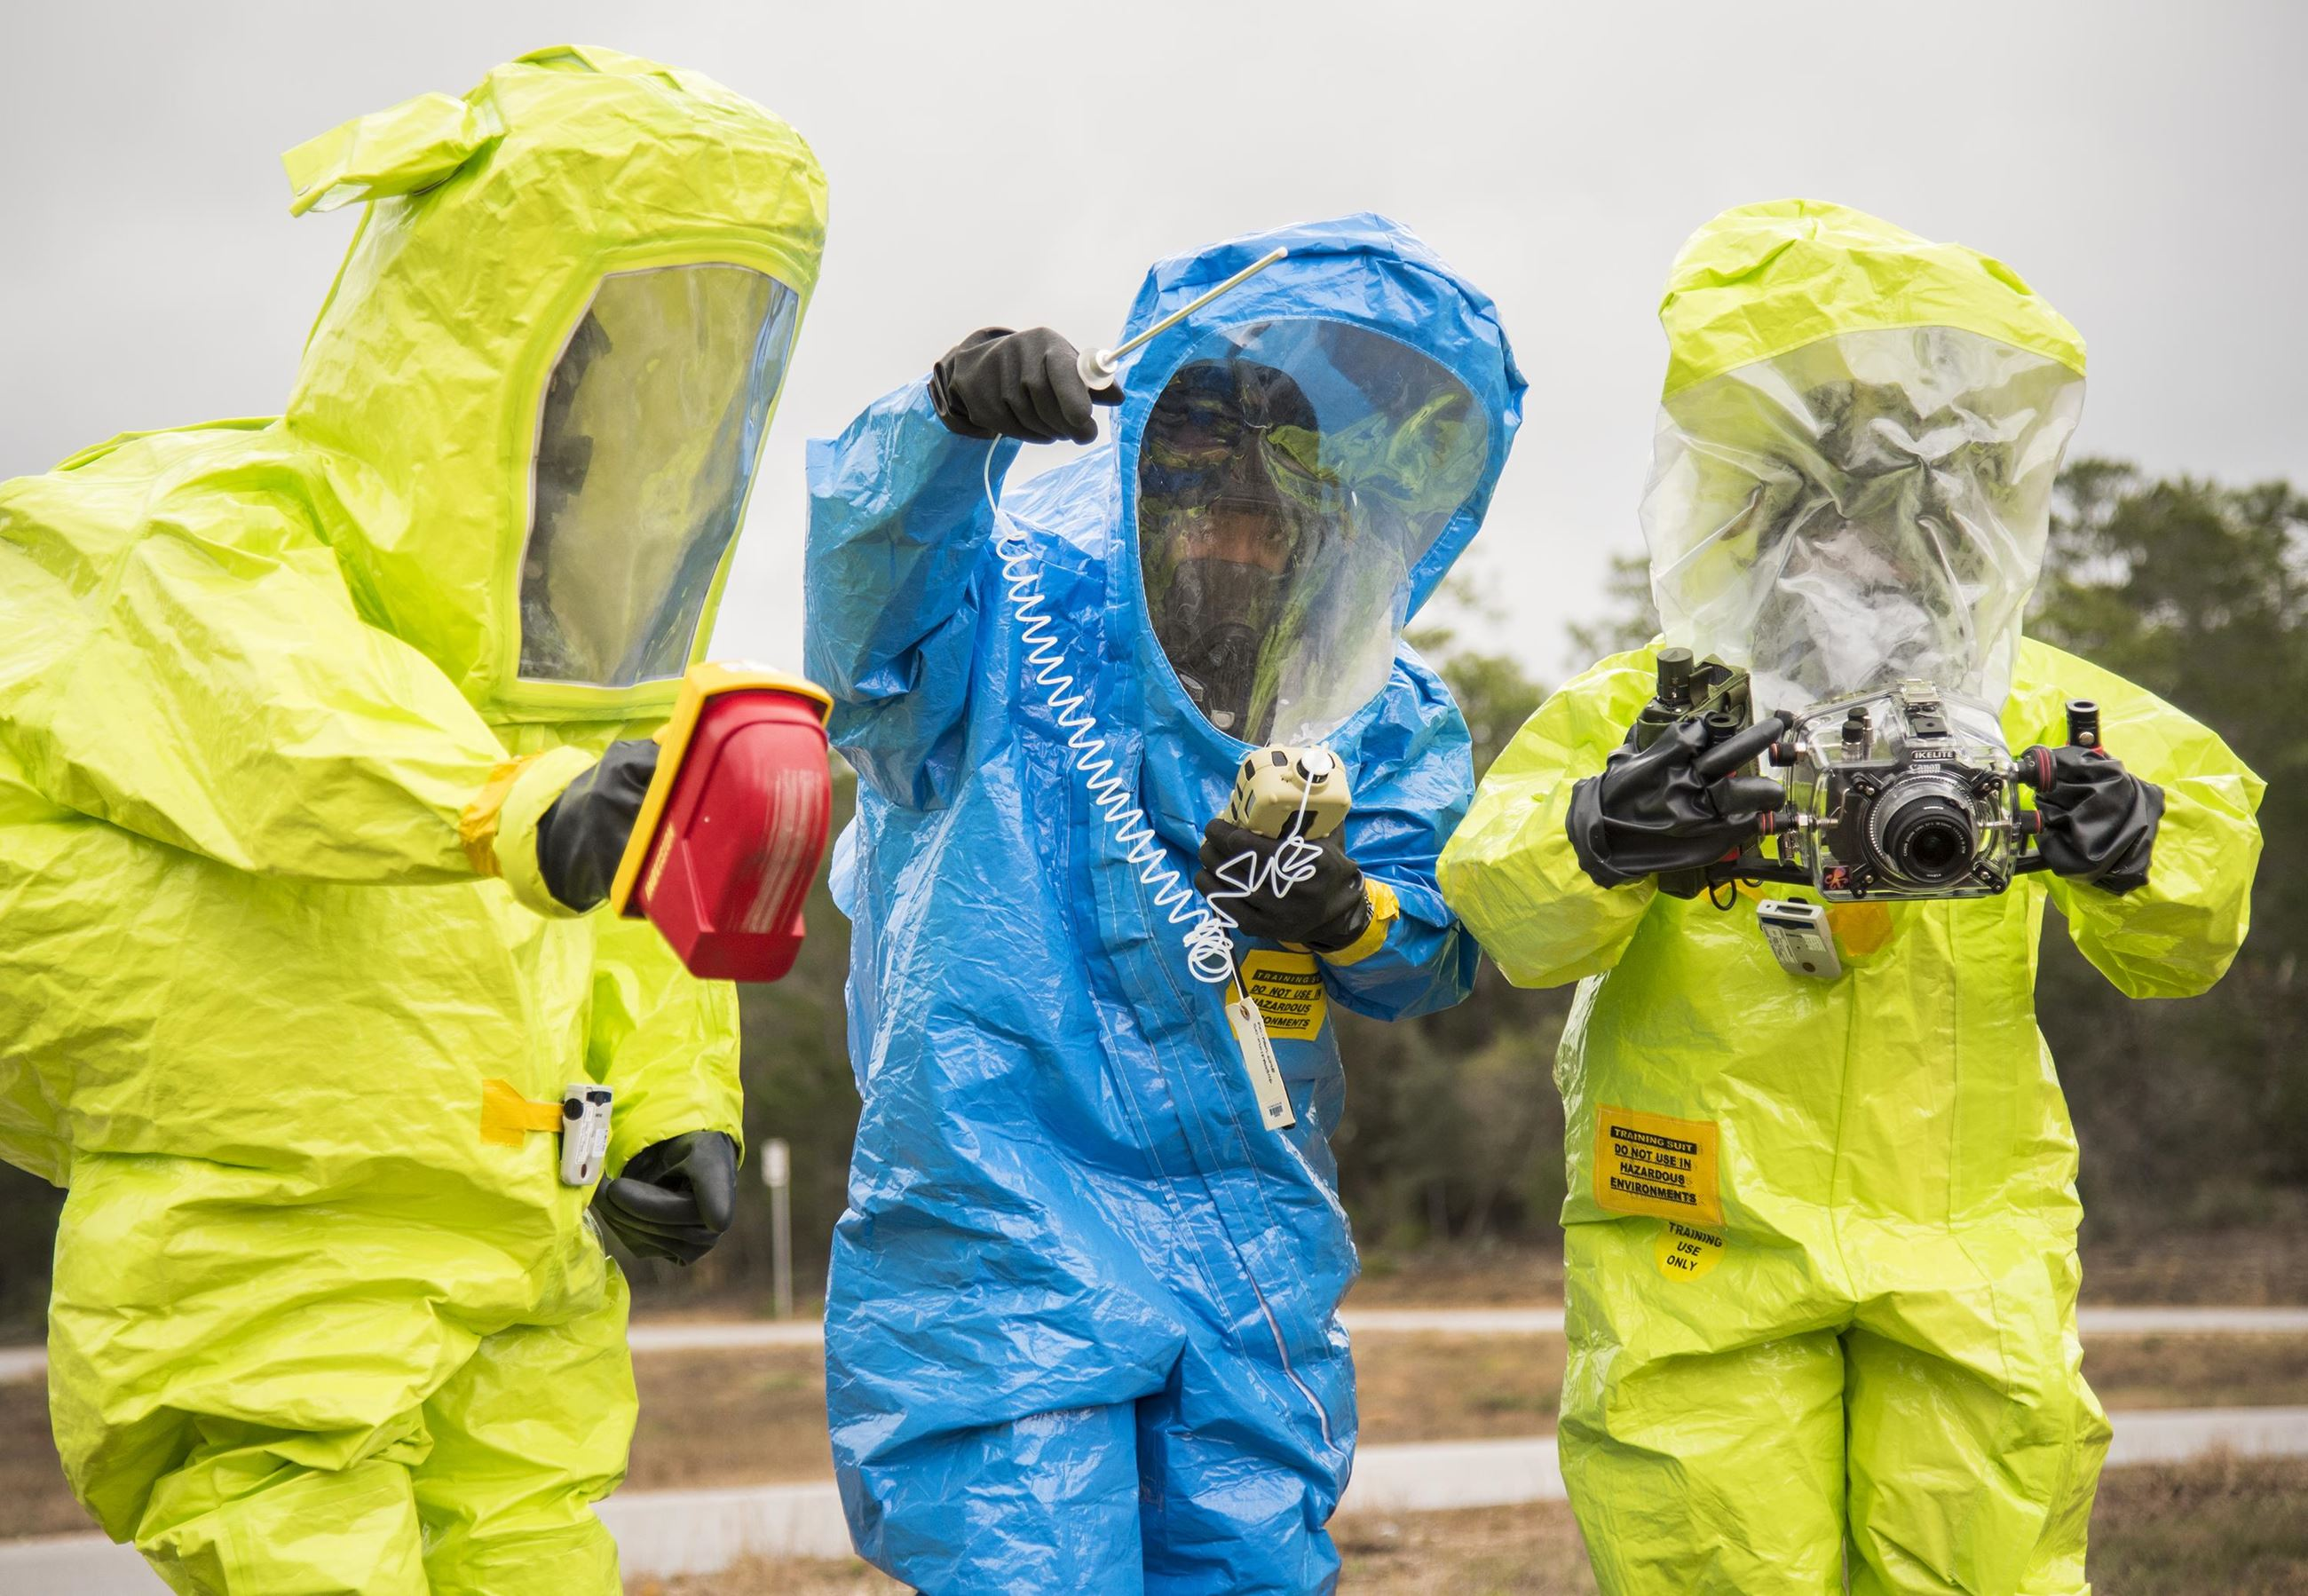 People in HazMat suits